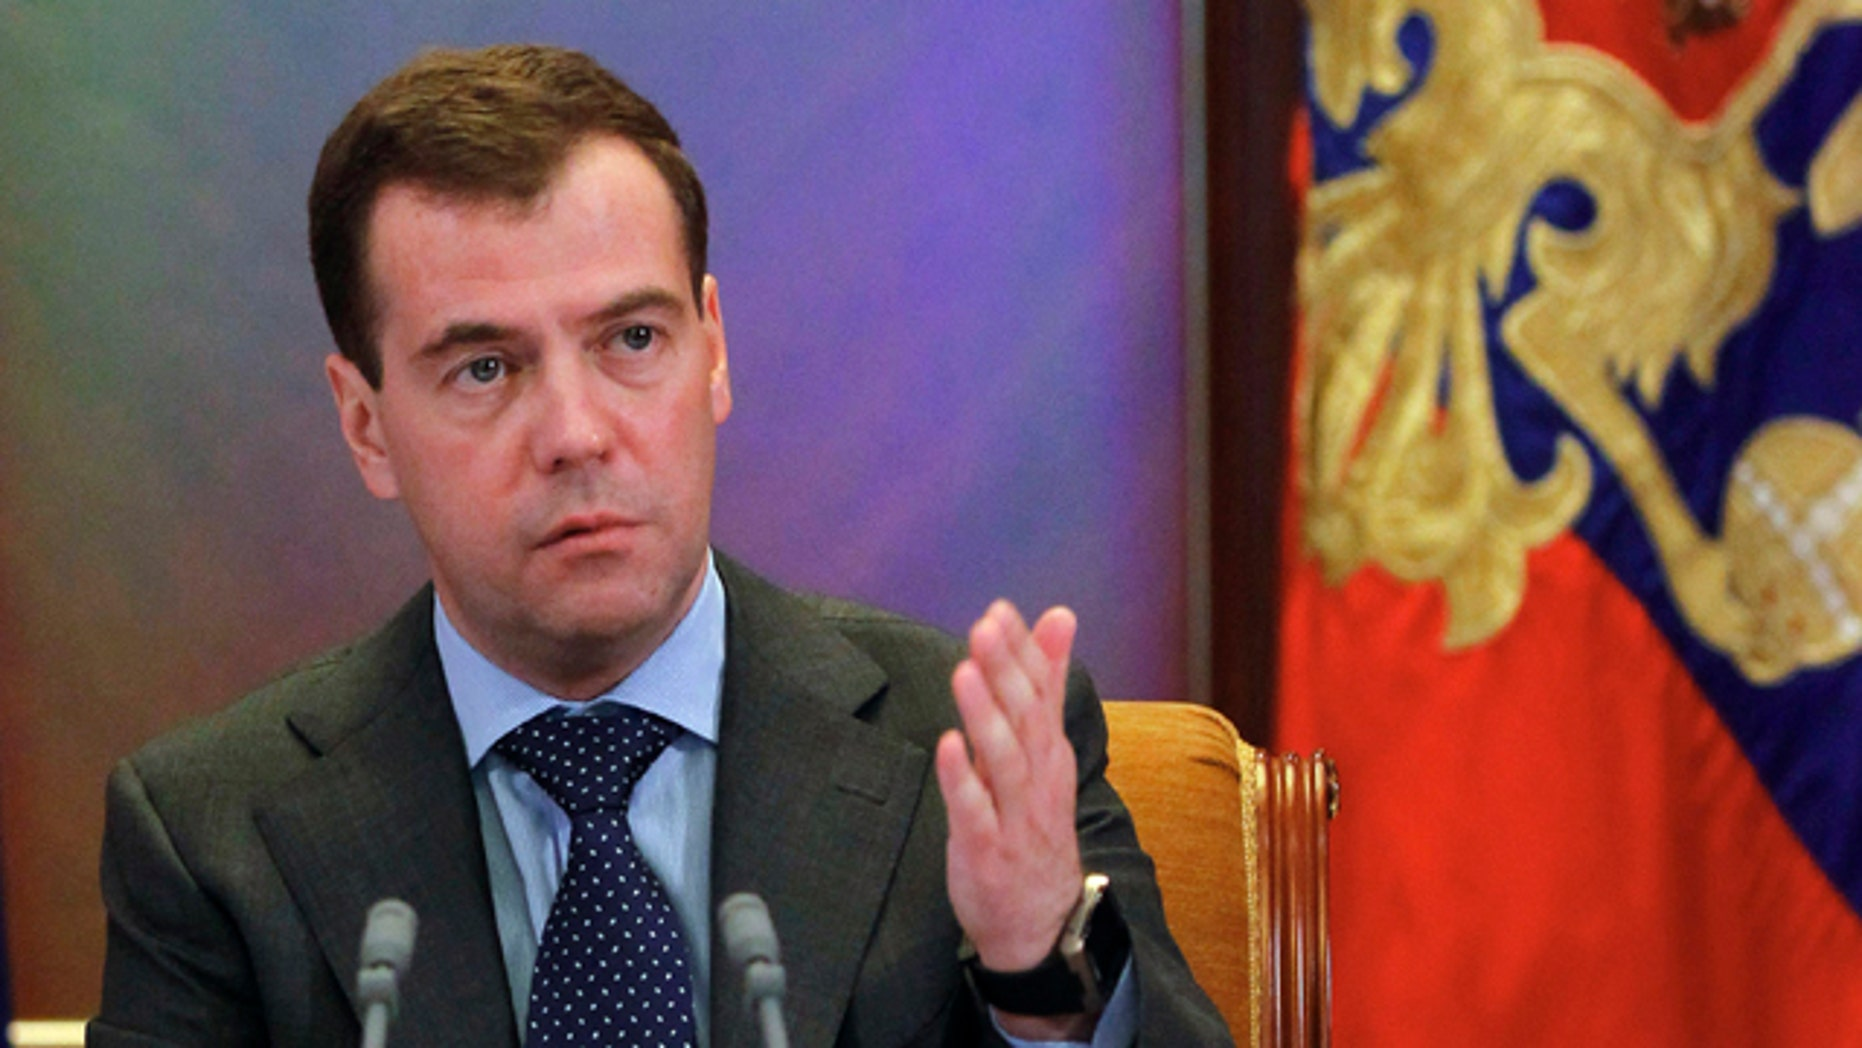 March 21: Russian President Dmitry Medvedev gestures while speaking during a meeting at the Gorki residence outside Moscow. Medvedev rebuked Prime Minister Vladimir Putin who called the UN-approved military operation against Libya a 'crusade.'